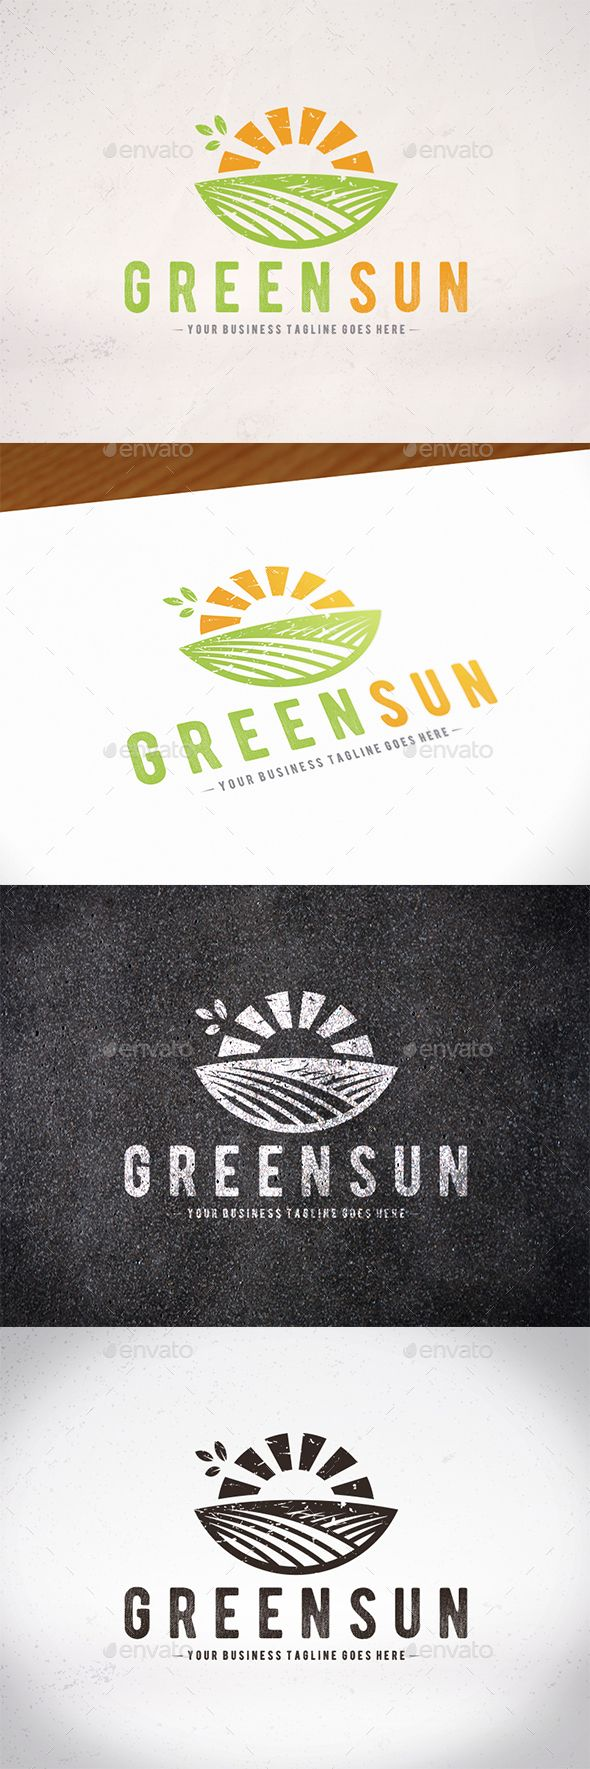 Green Sun Logo Template PSD, Vector EPS, AI Illustrator. Download here: https://graphicriver.net/item/green-sun-logo-template/17494538?ref=ksioks